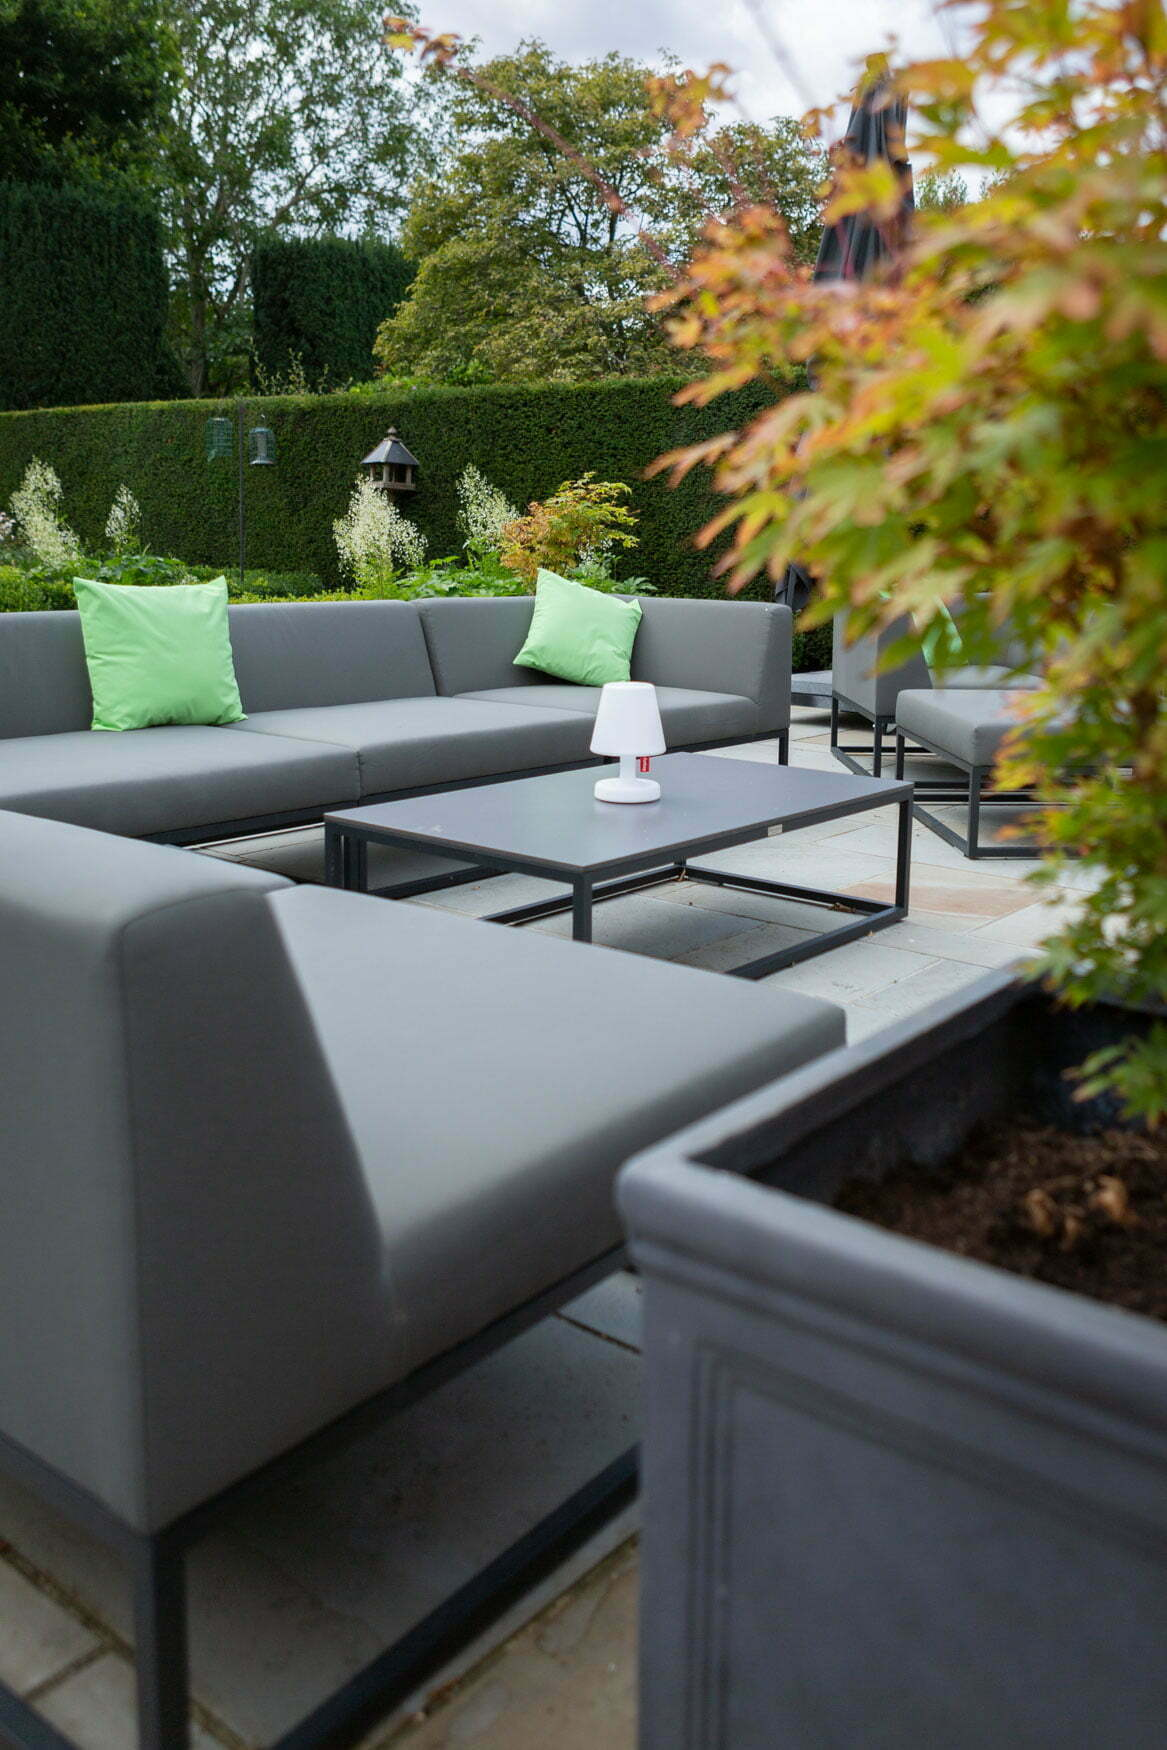 Planet 14 Landscapes - Outdoor Furniture